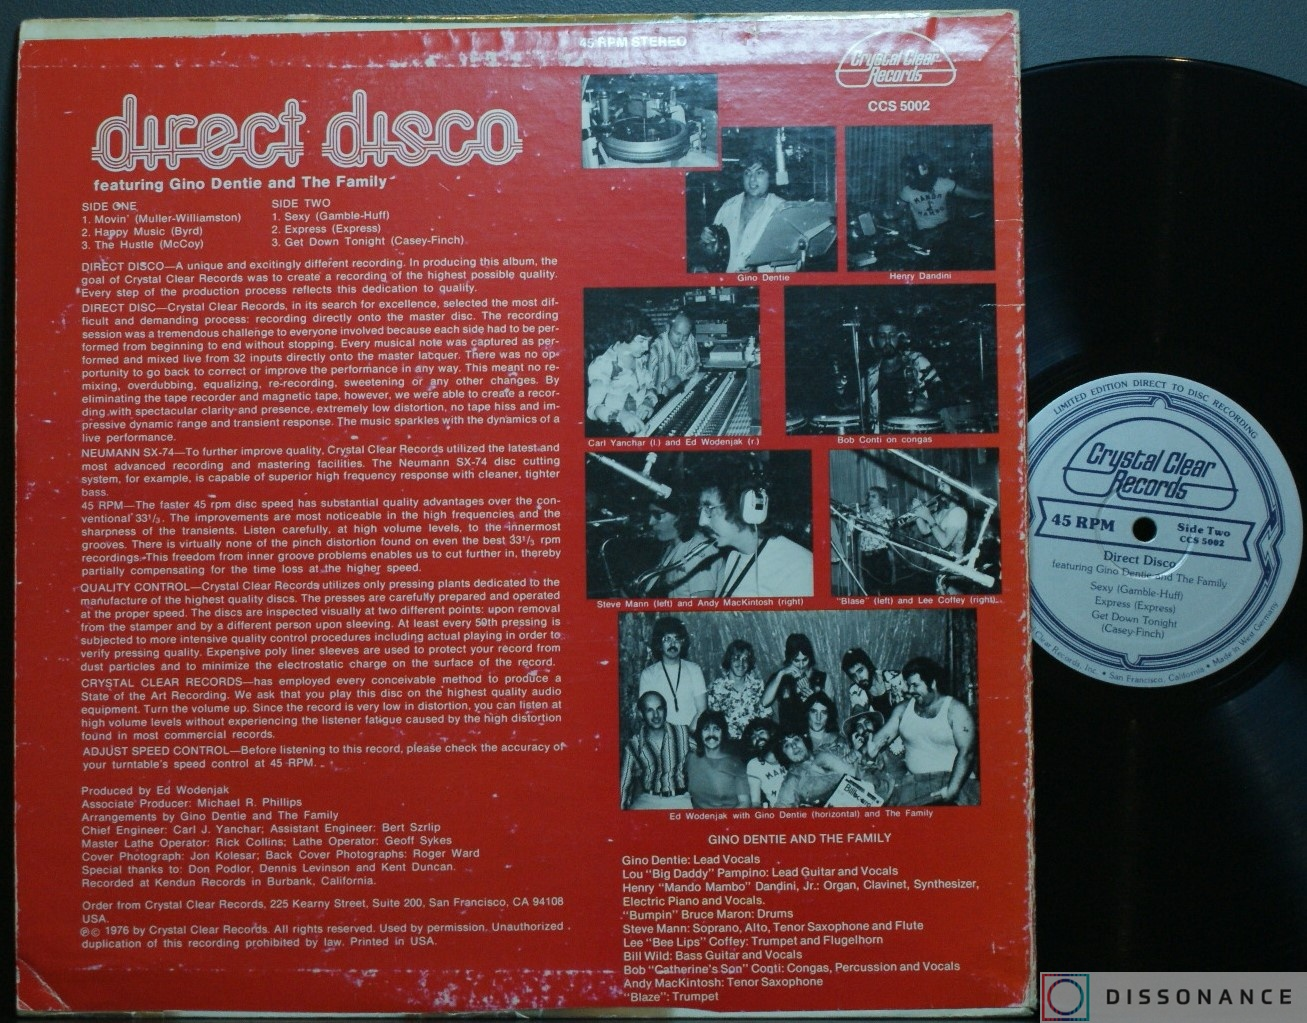 Виниловая пластинка Gino Dentie And The Family - Direct Disco (1976) - фото 1